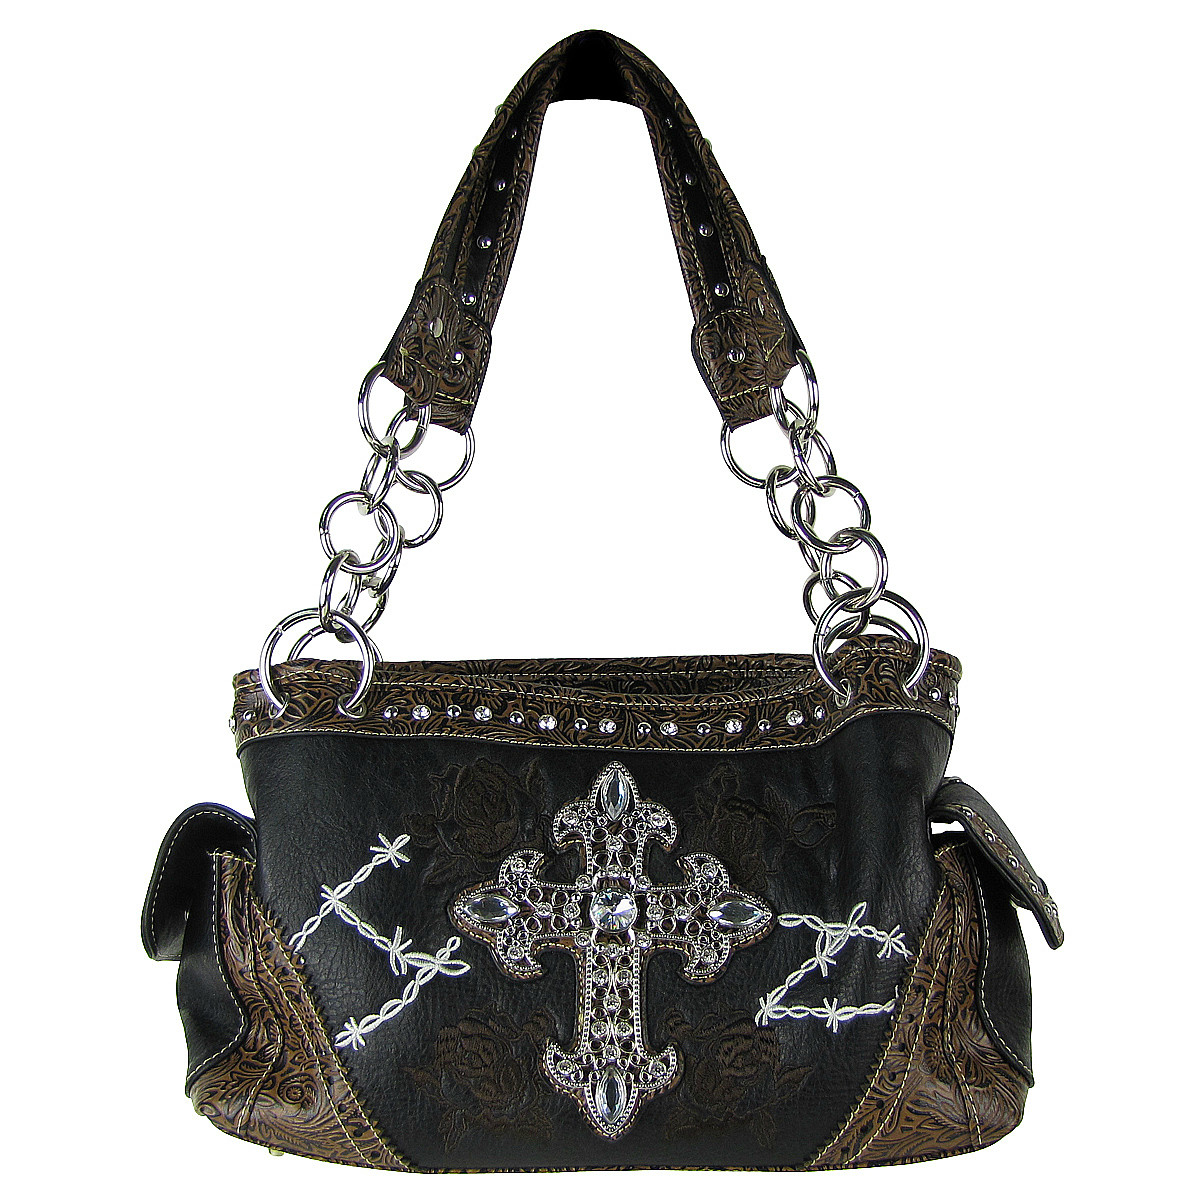 BLACK STITCHED WESTERN ROSE CROSS LOOK SHOULDER HANDBAG HB1-CHF0018BLK